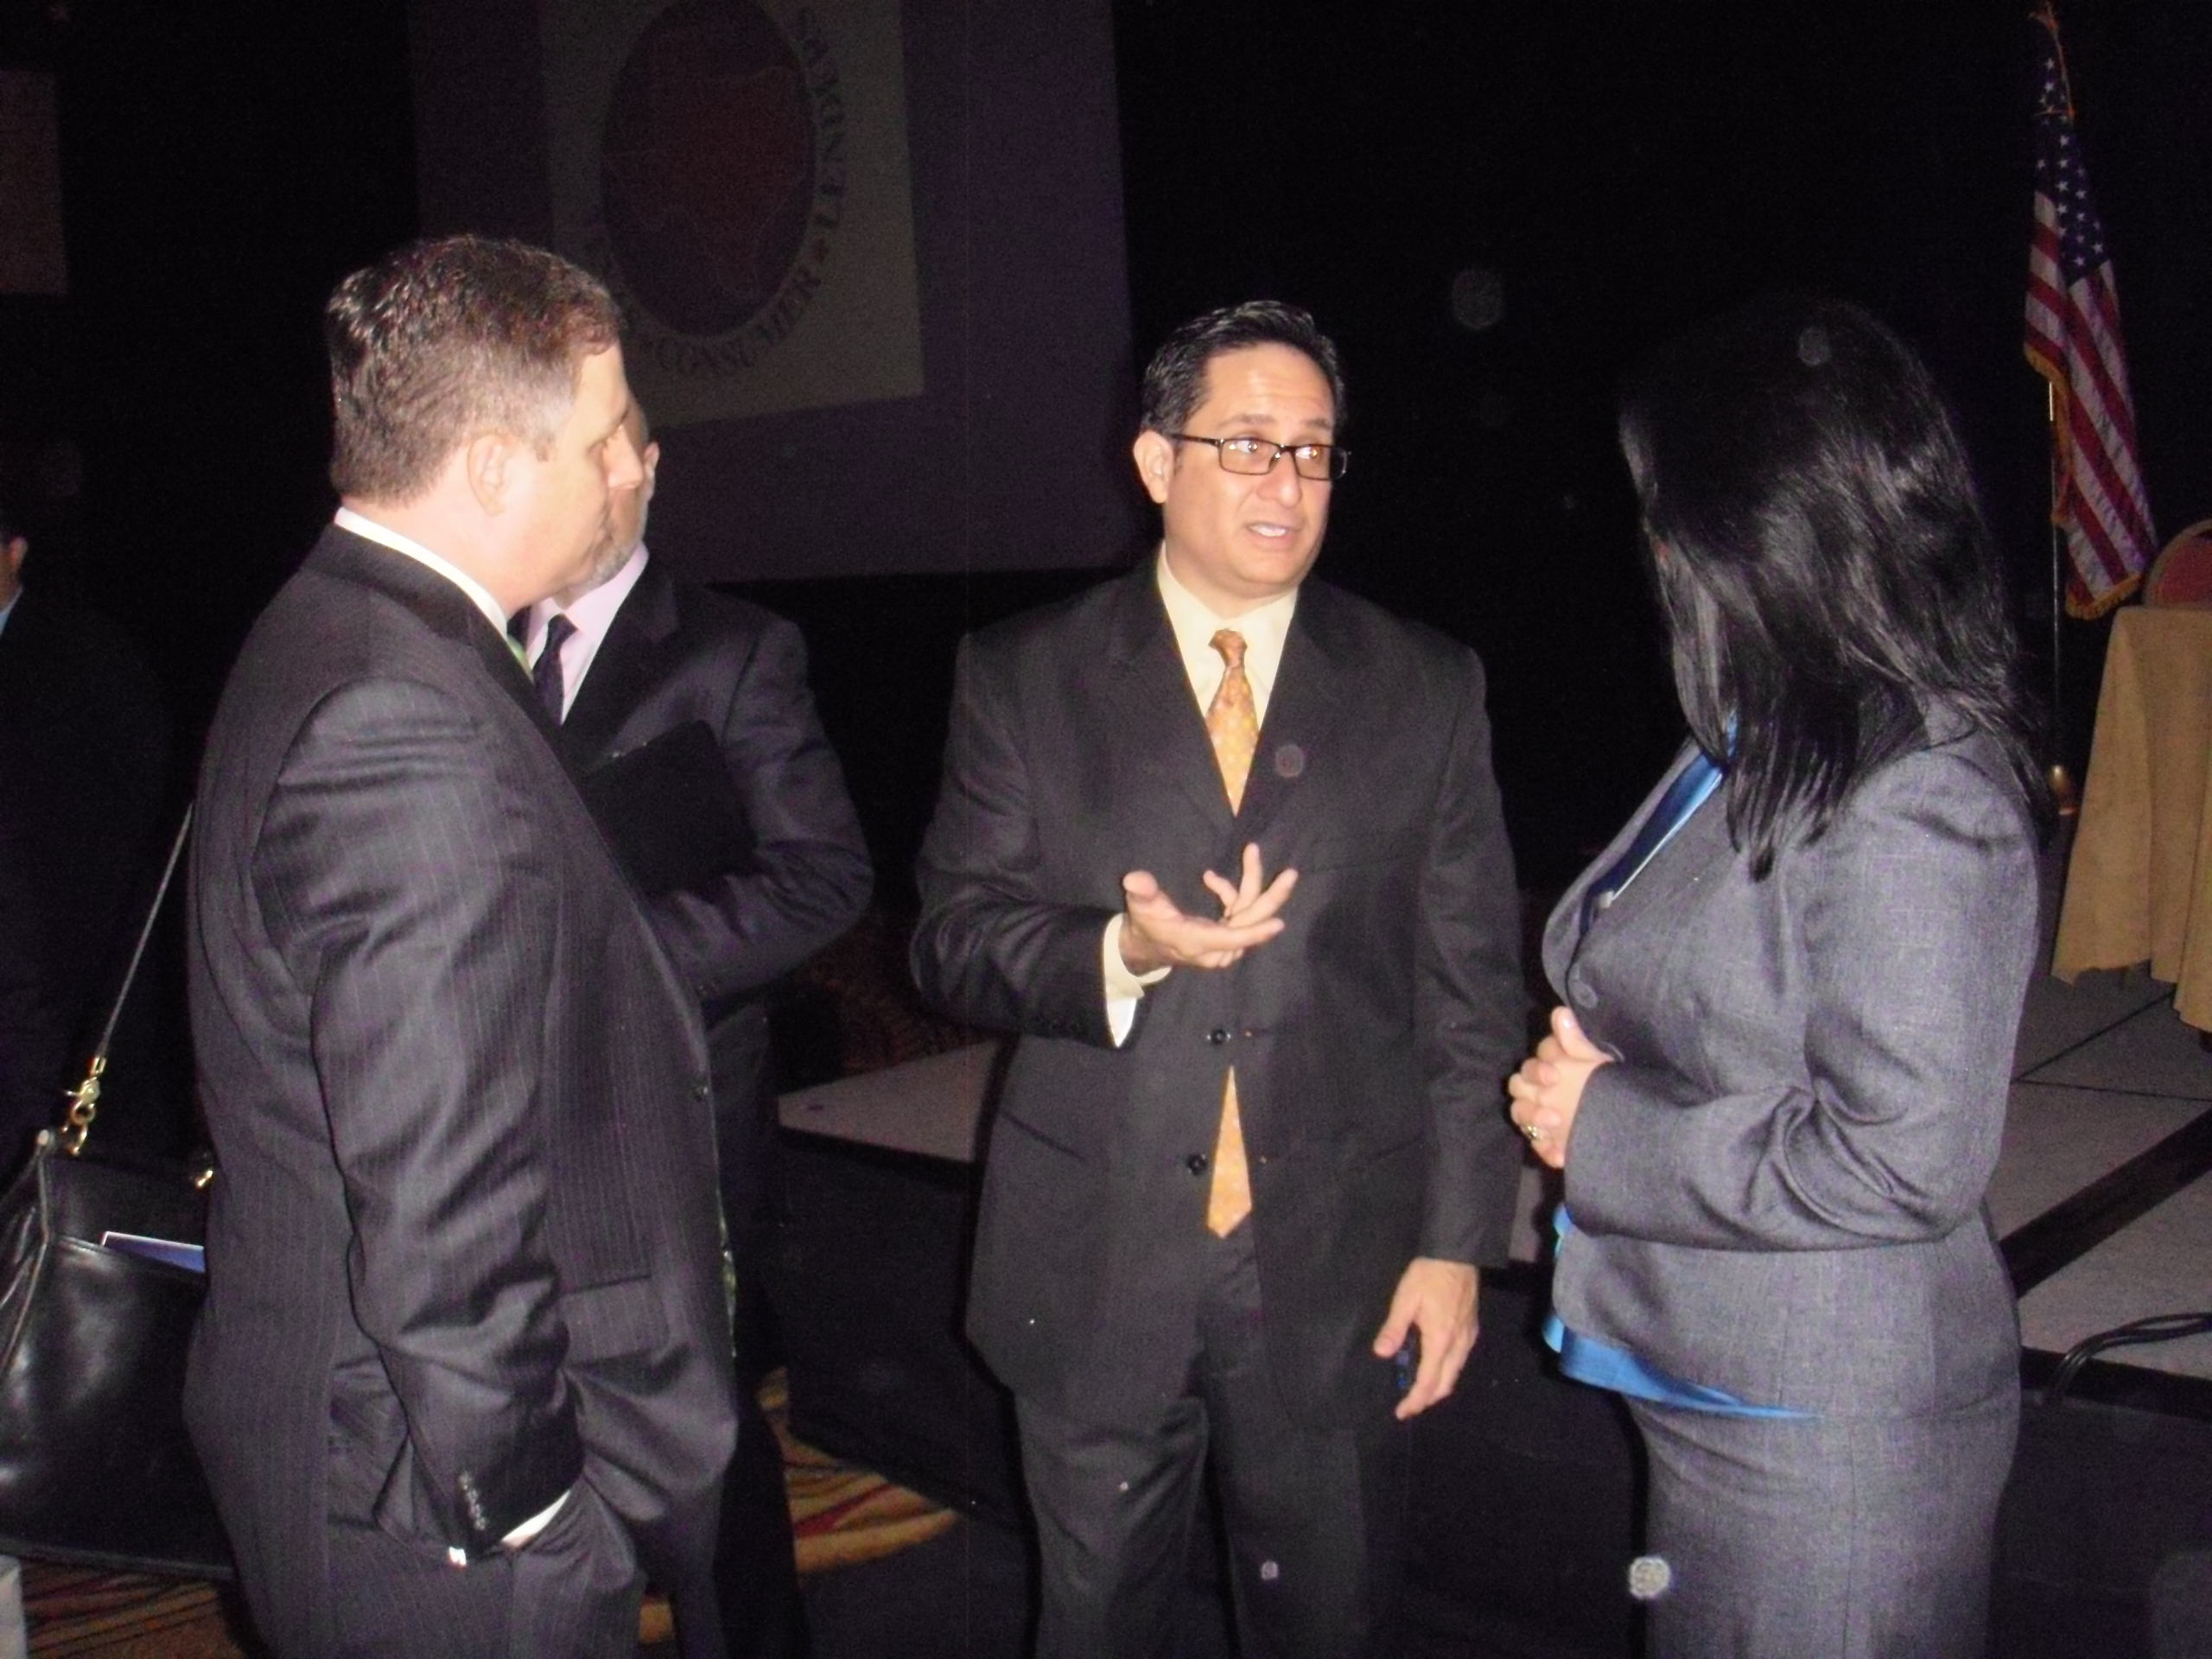 Linda Vega (LRTV), Brad Bailey ( the Texas Solution), and state Rep. Larry Gonzales.